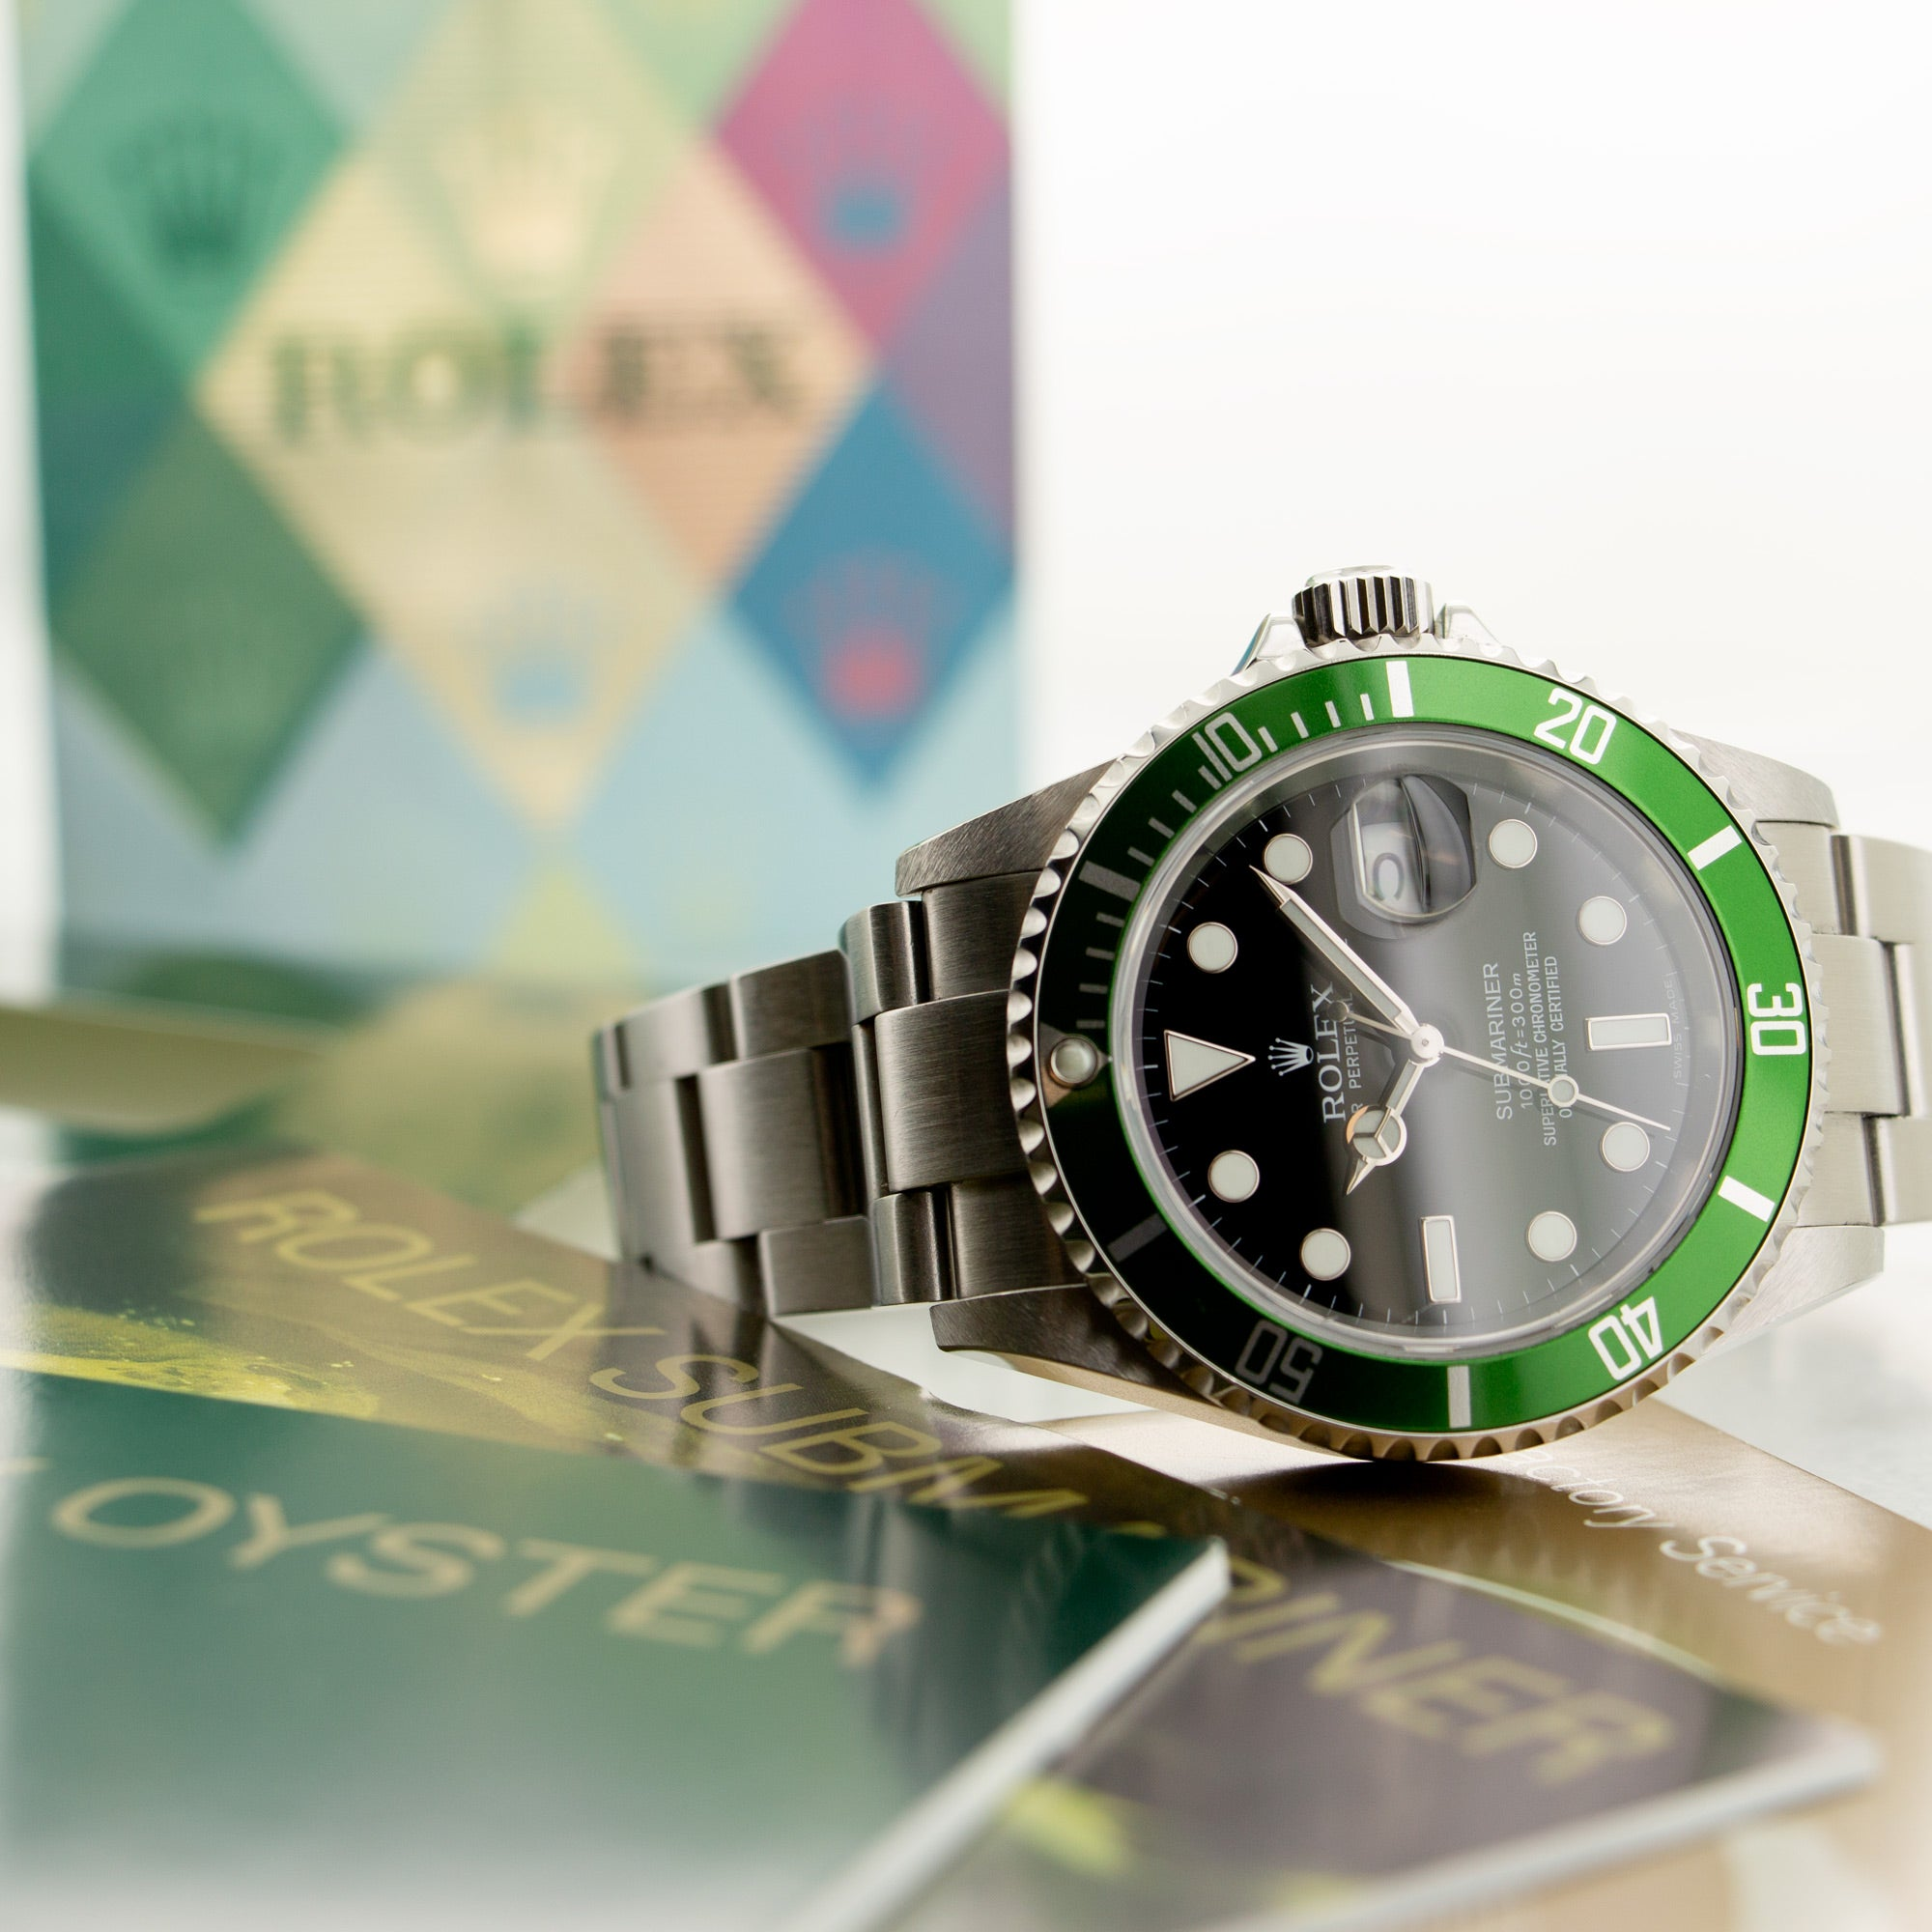 Rolex Submariner 16610LV Steel  Likely Never Polished, Original Finish Gents Steel Black 40mm Automatic 2007 Stainless Steel Original Box and Certificate